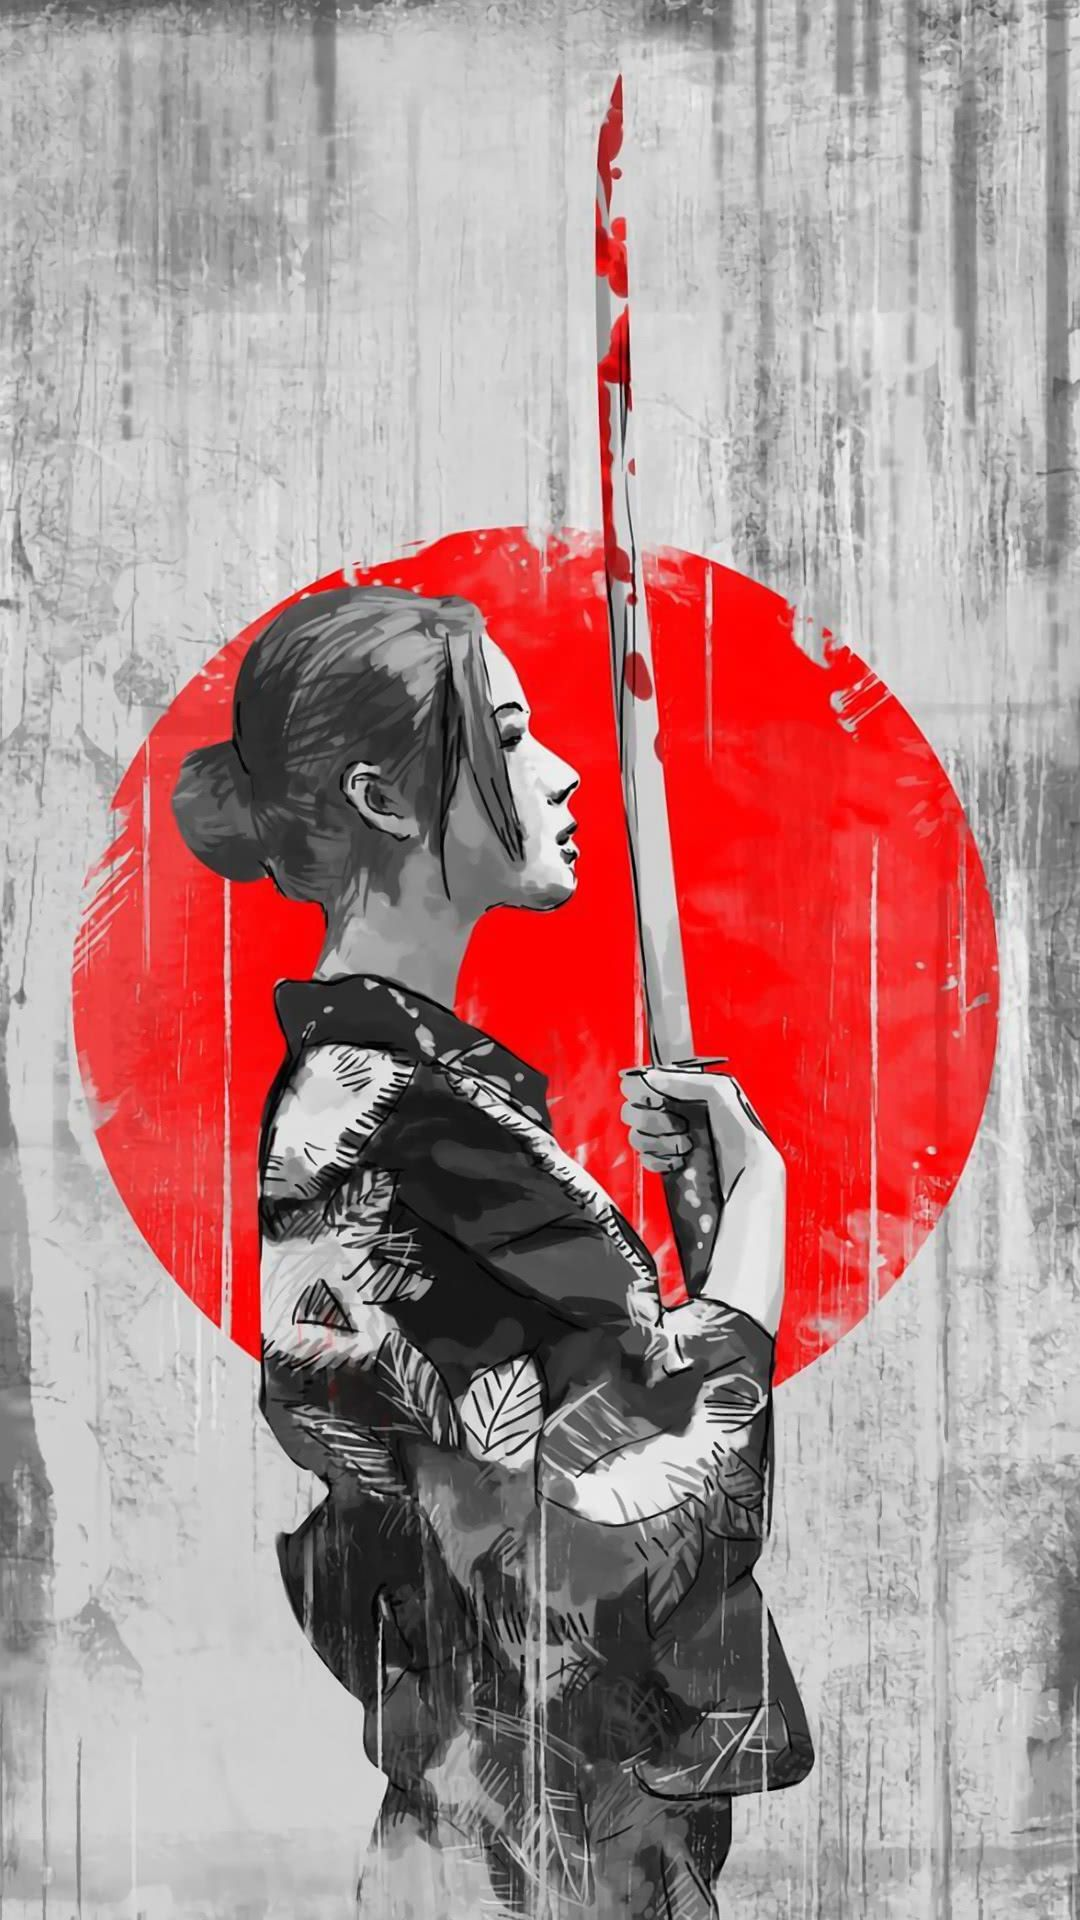 Mysterious Iphone Wallpaper Iphone Wallpaper Samurai Artwork Samurai Wallpaper Samurai Art